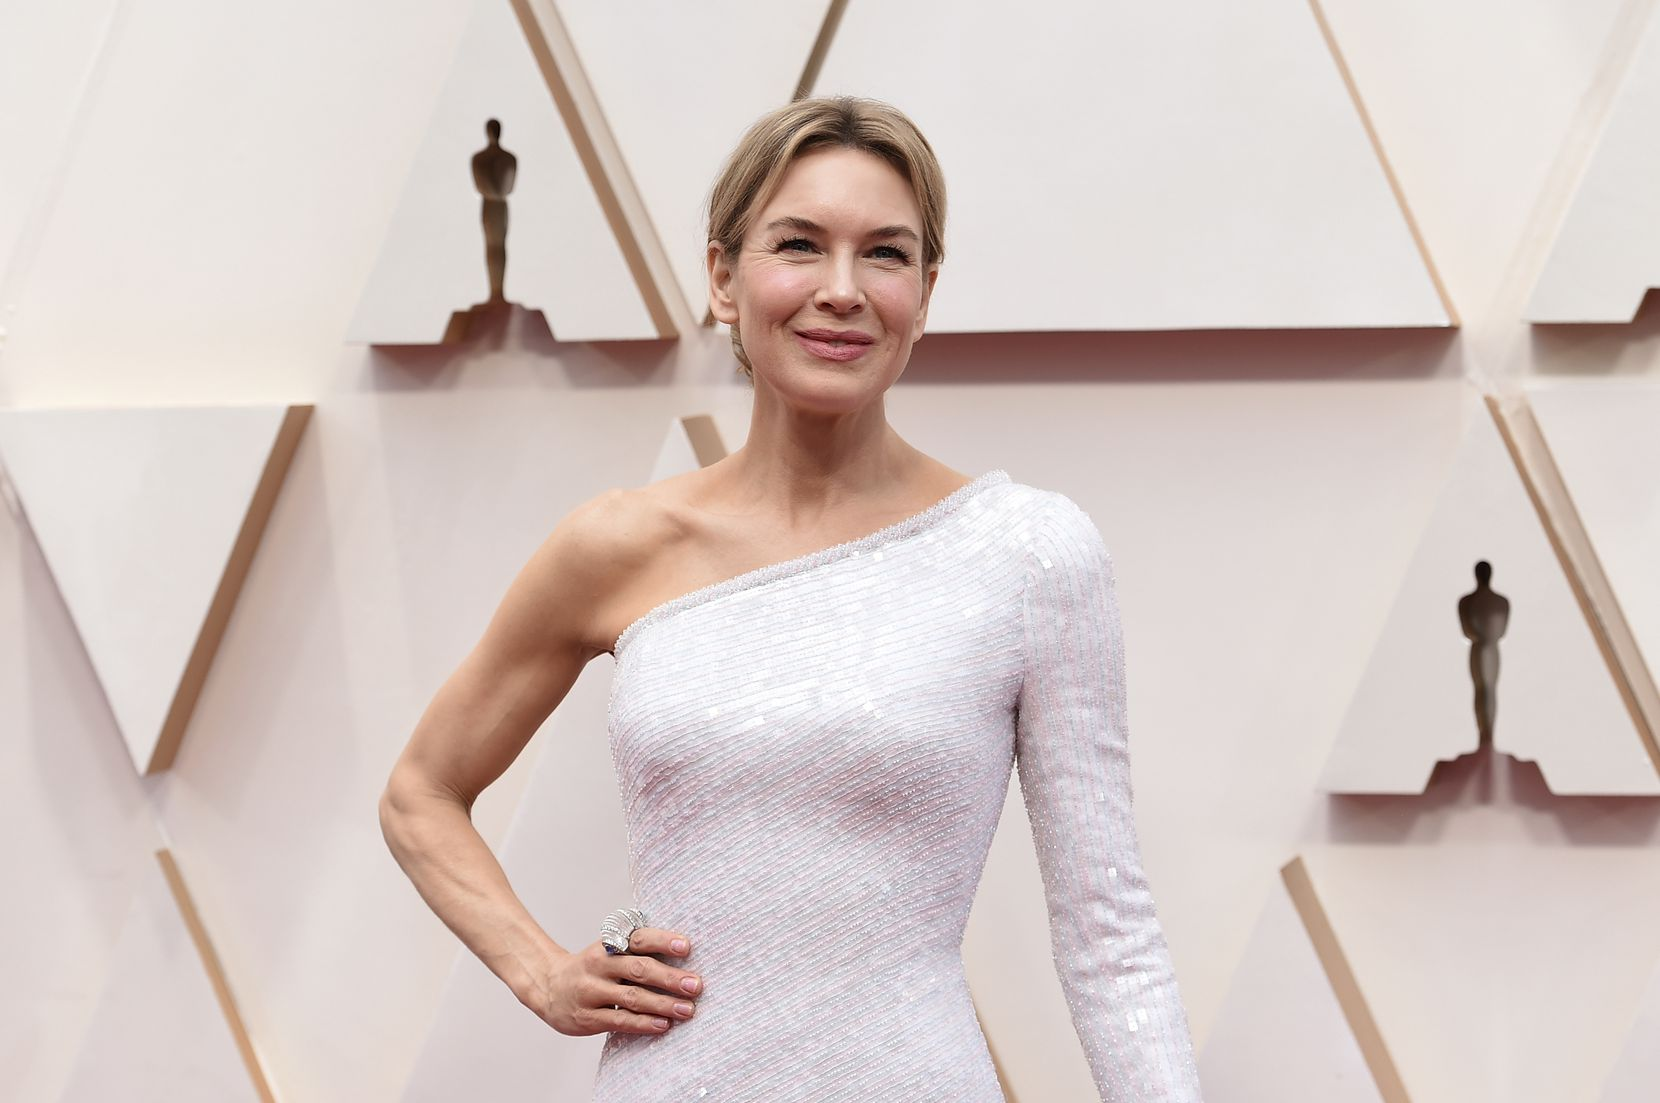 Renée Zellweger arrives for the 92nd Oscars at the Dolby Theatre in Hollywood, California on Feb. 9, 2020.